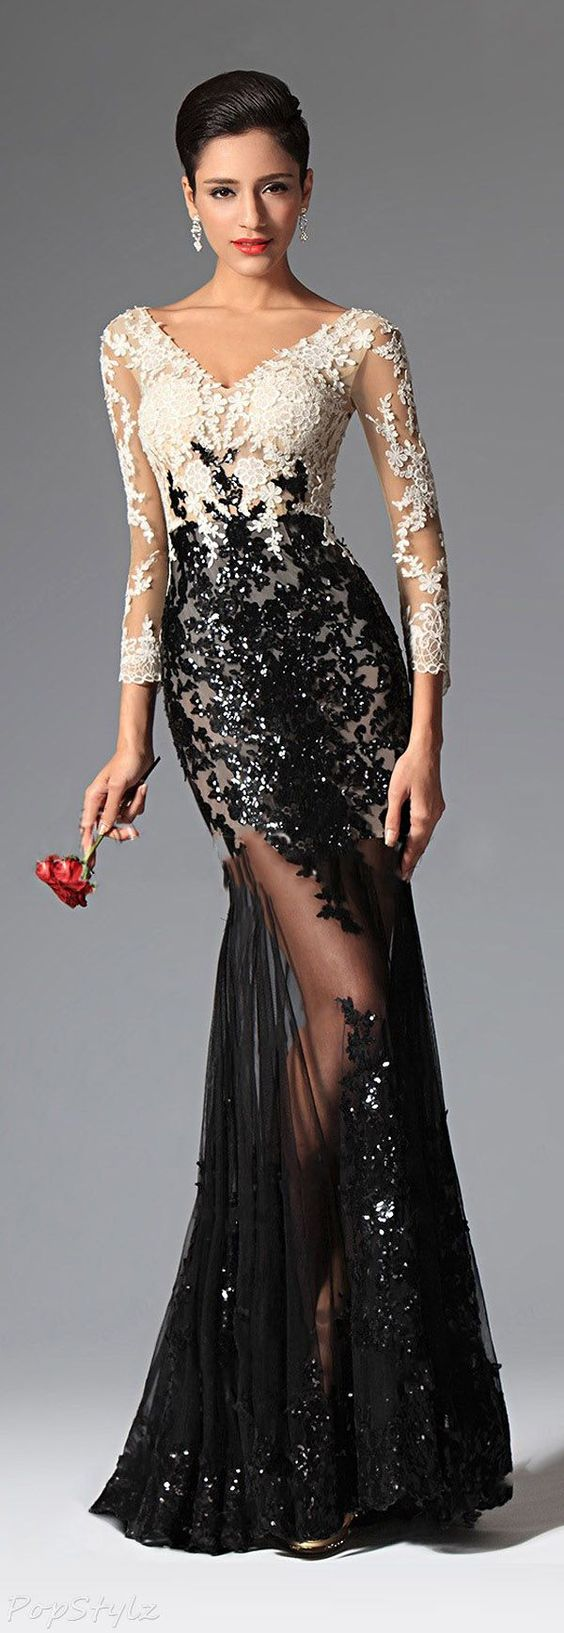 How To Look Smashing In An Evening Gown – Some Tips